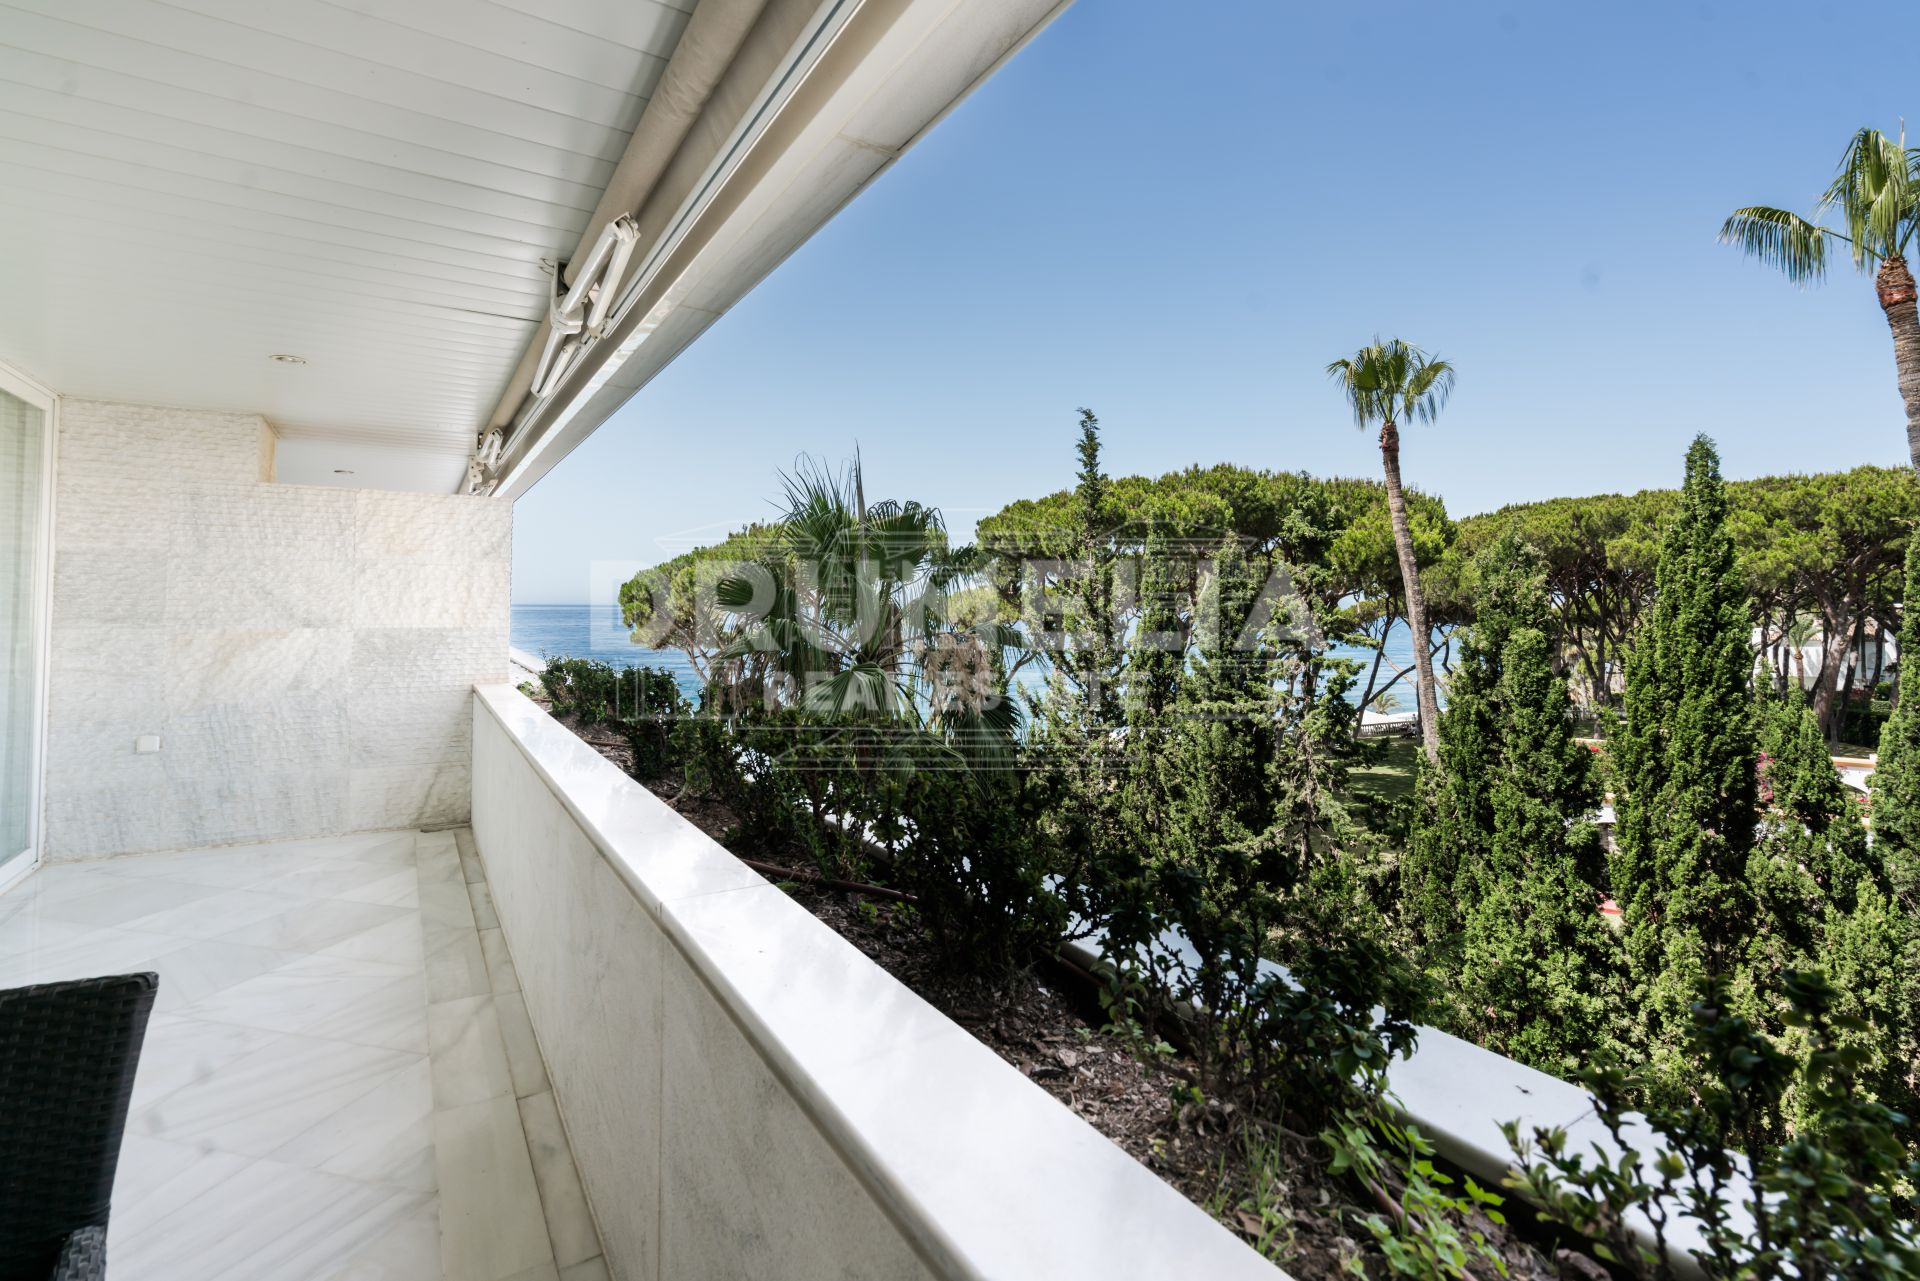 Marbella Golden Mile,  Delightful Modern Seafront Apartment, Marina Mariola, Golden Mile